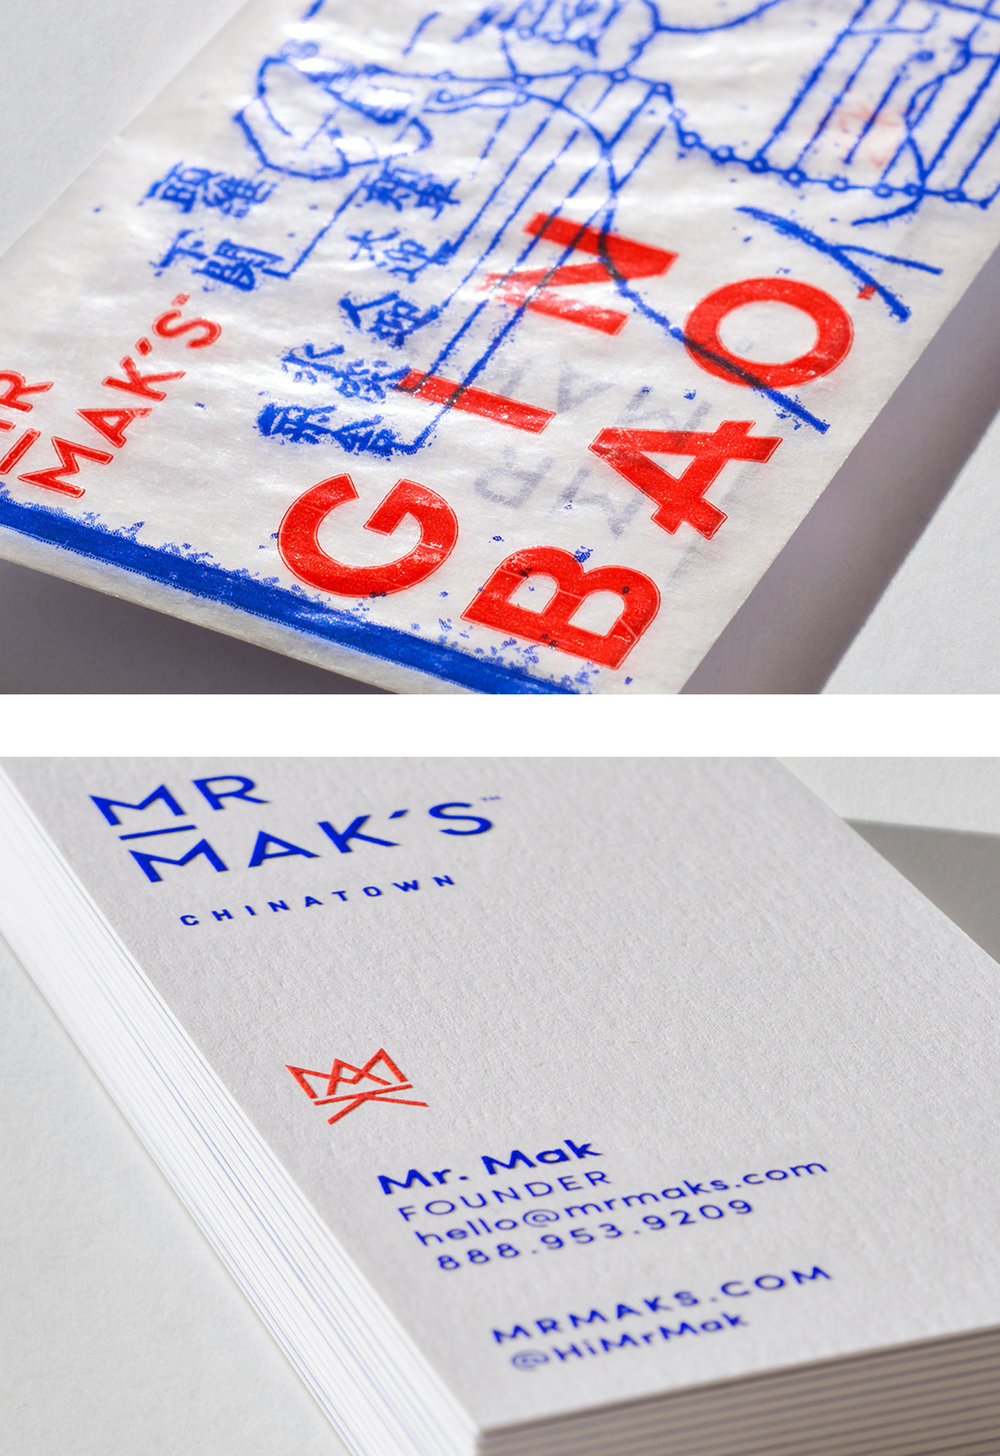 Mr. Mak's identity designed by Abby Haddican at Werner Design Werks